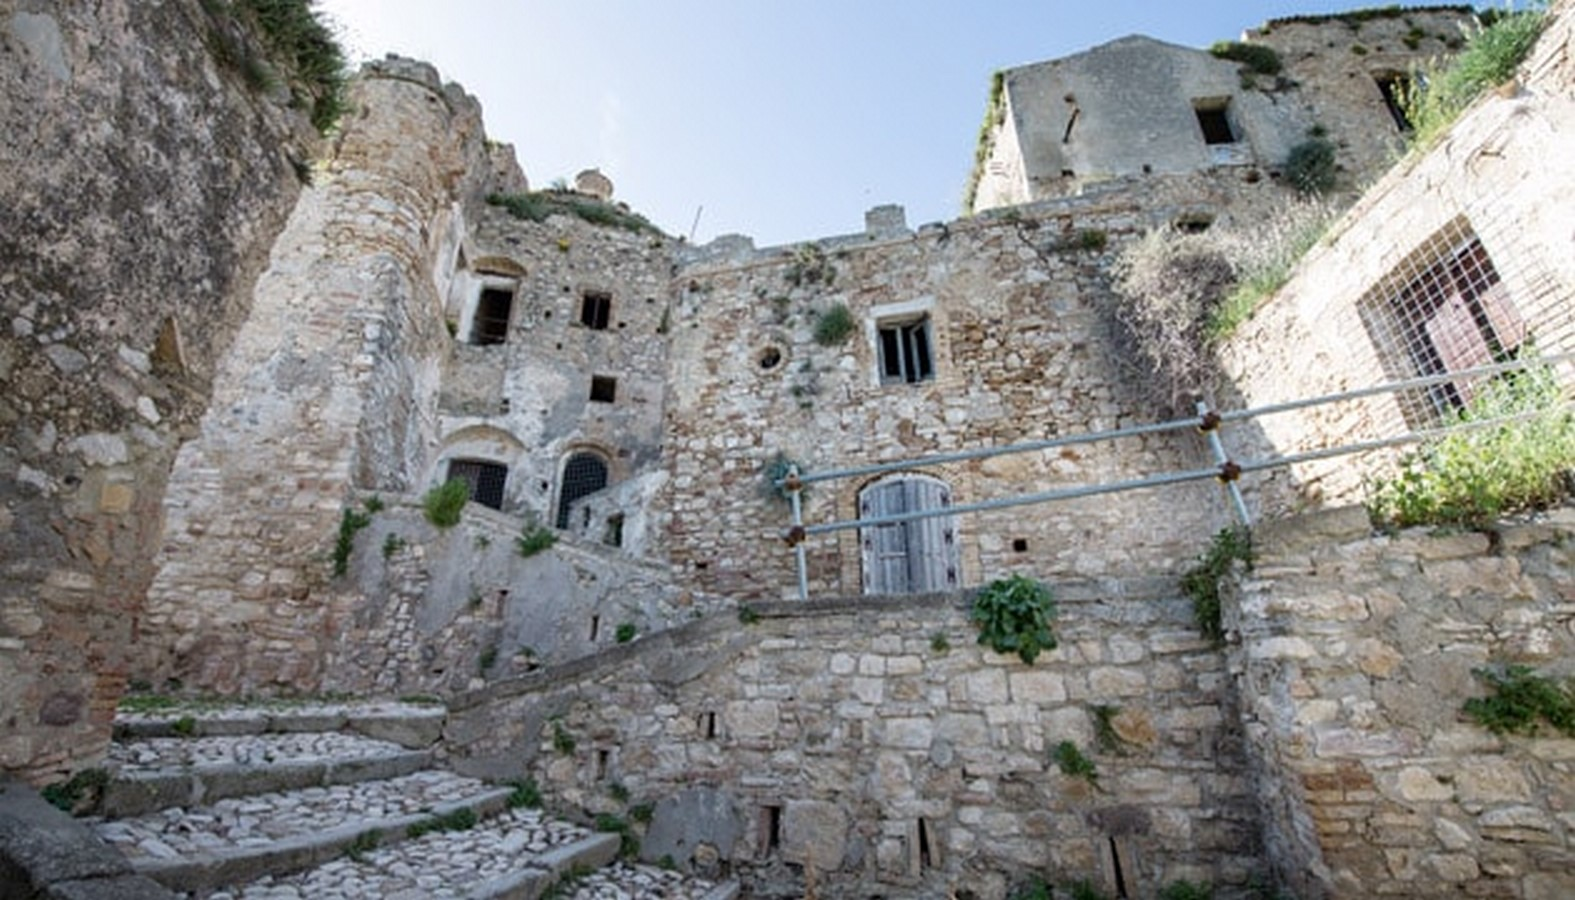 Lost In Time: Craco, Italy - Sheet3